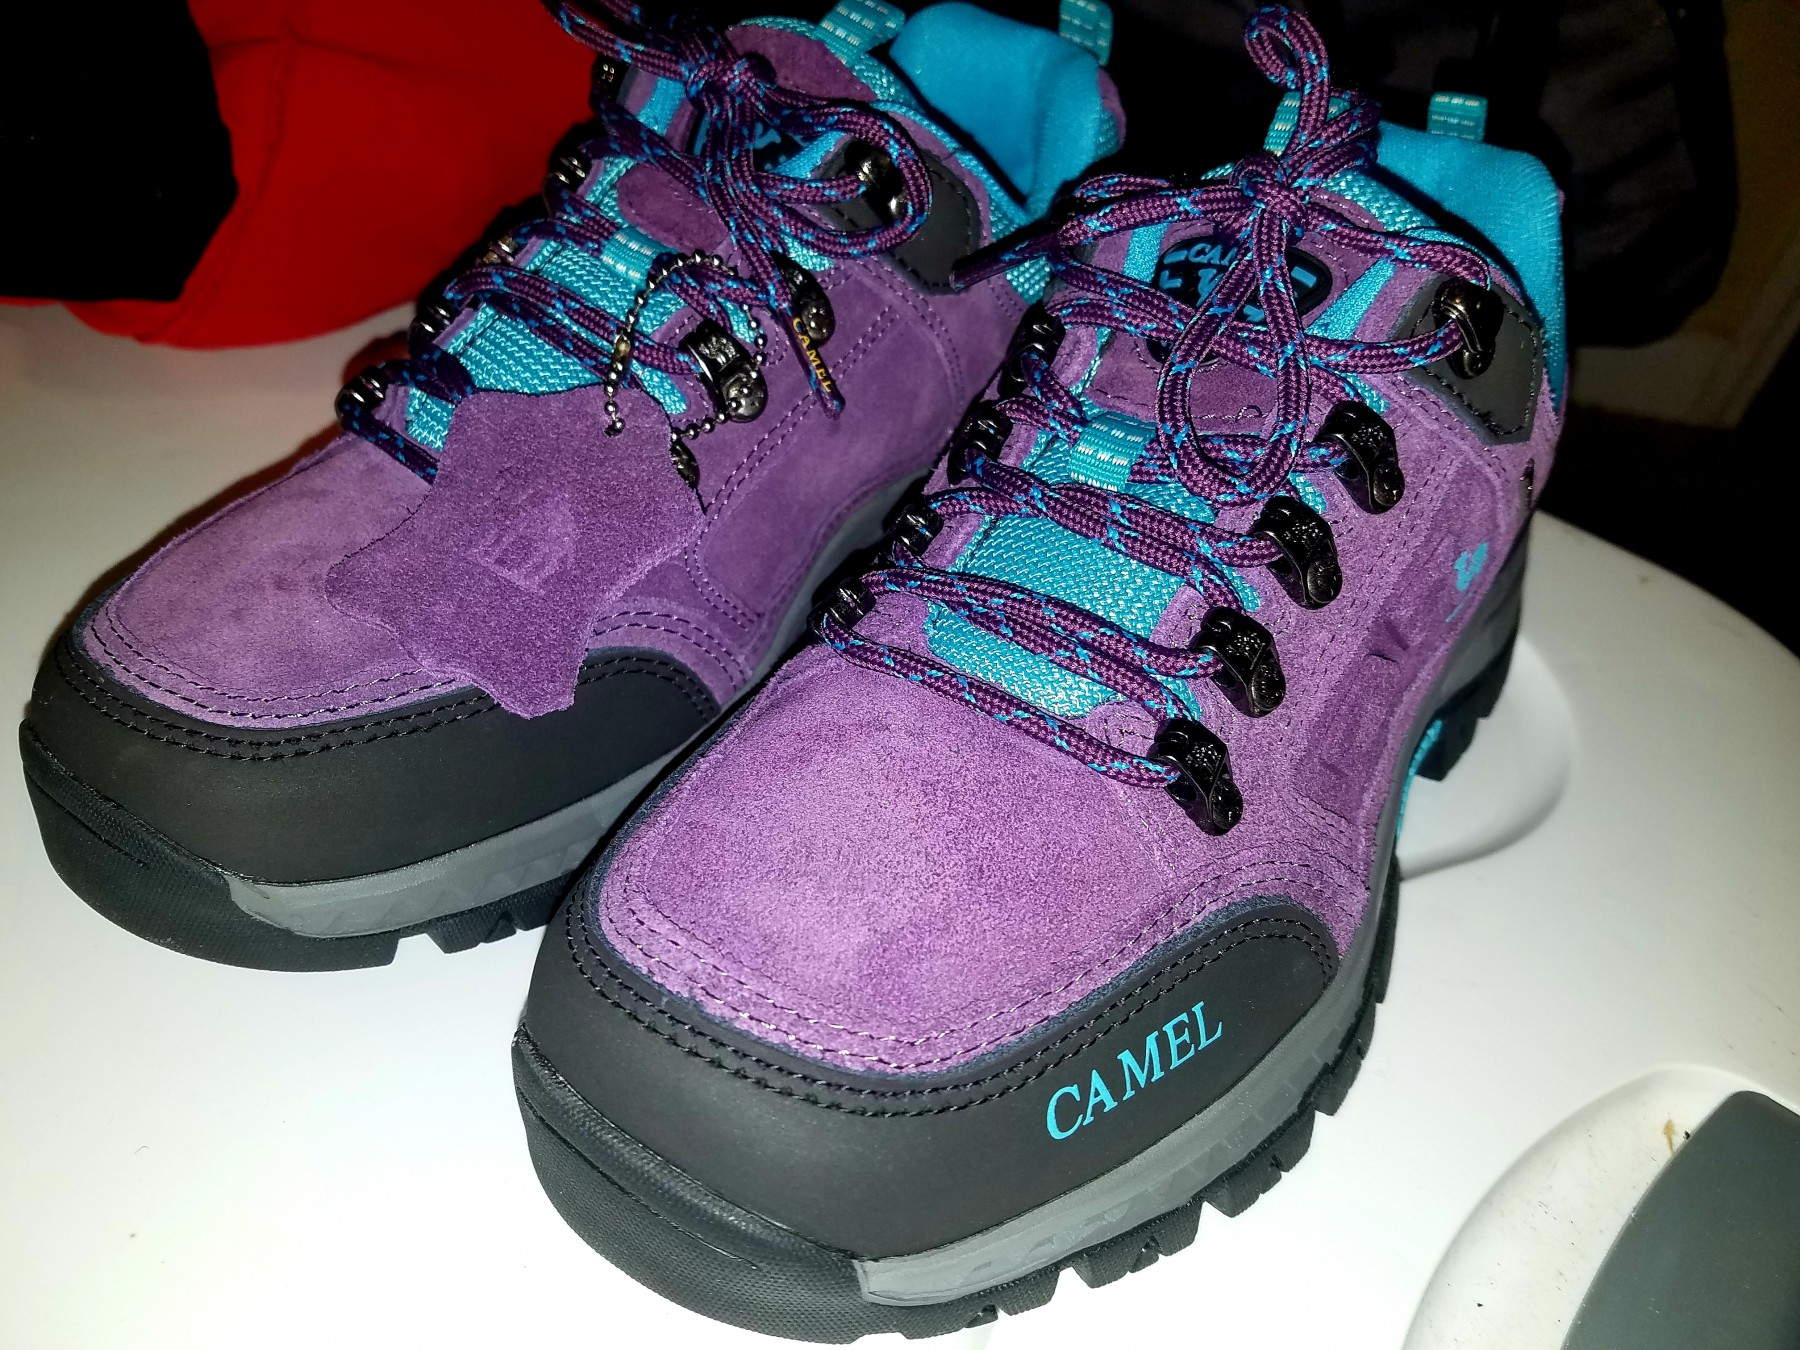 I'm impressed with these comfy,  hiking shoes!